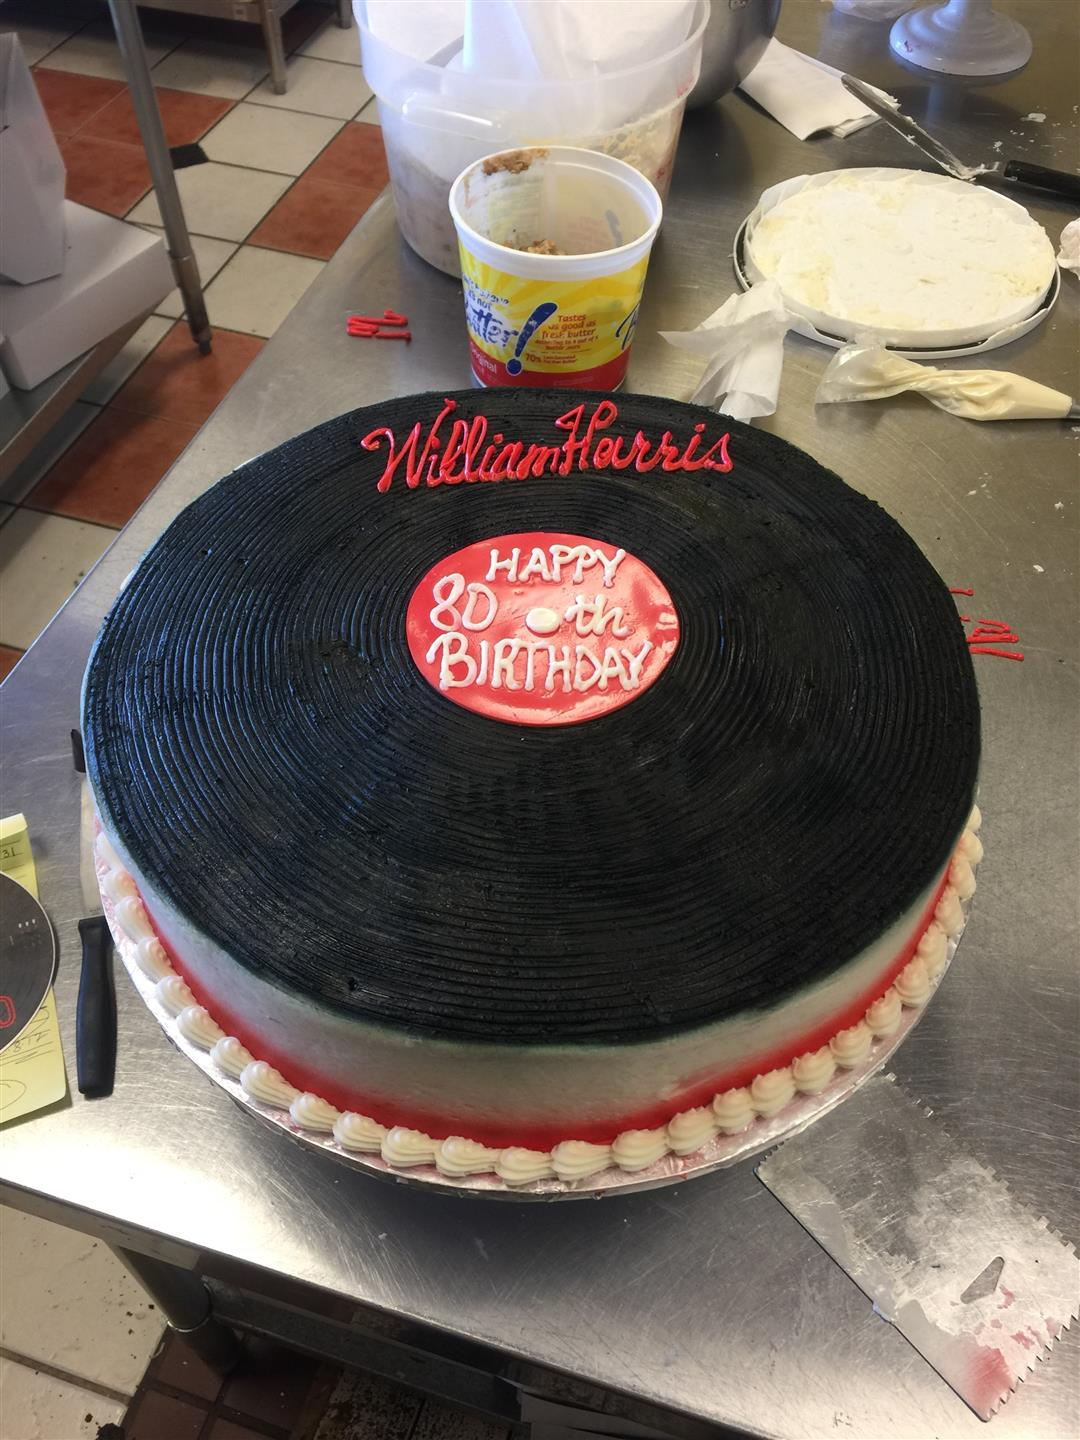 Cake shaped like a vinyl disk